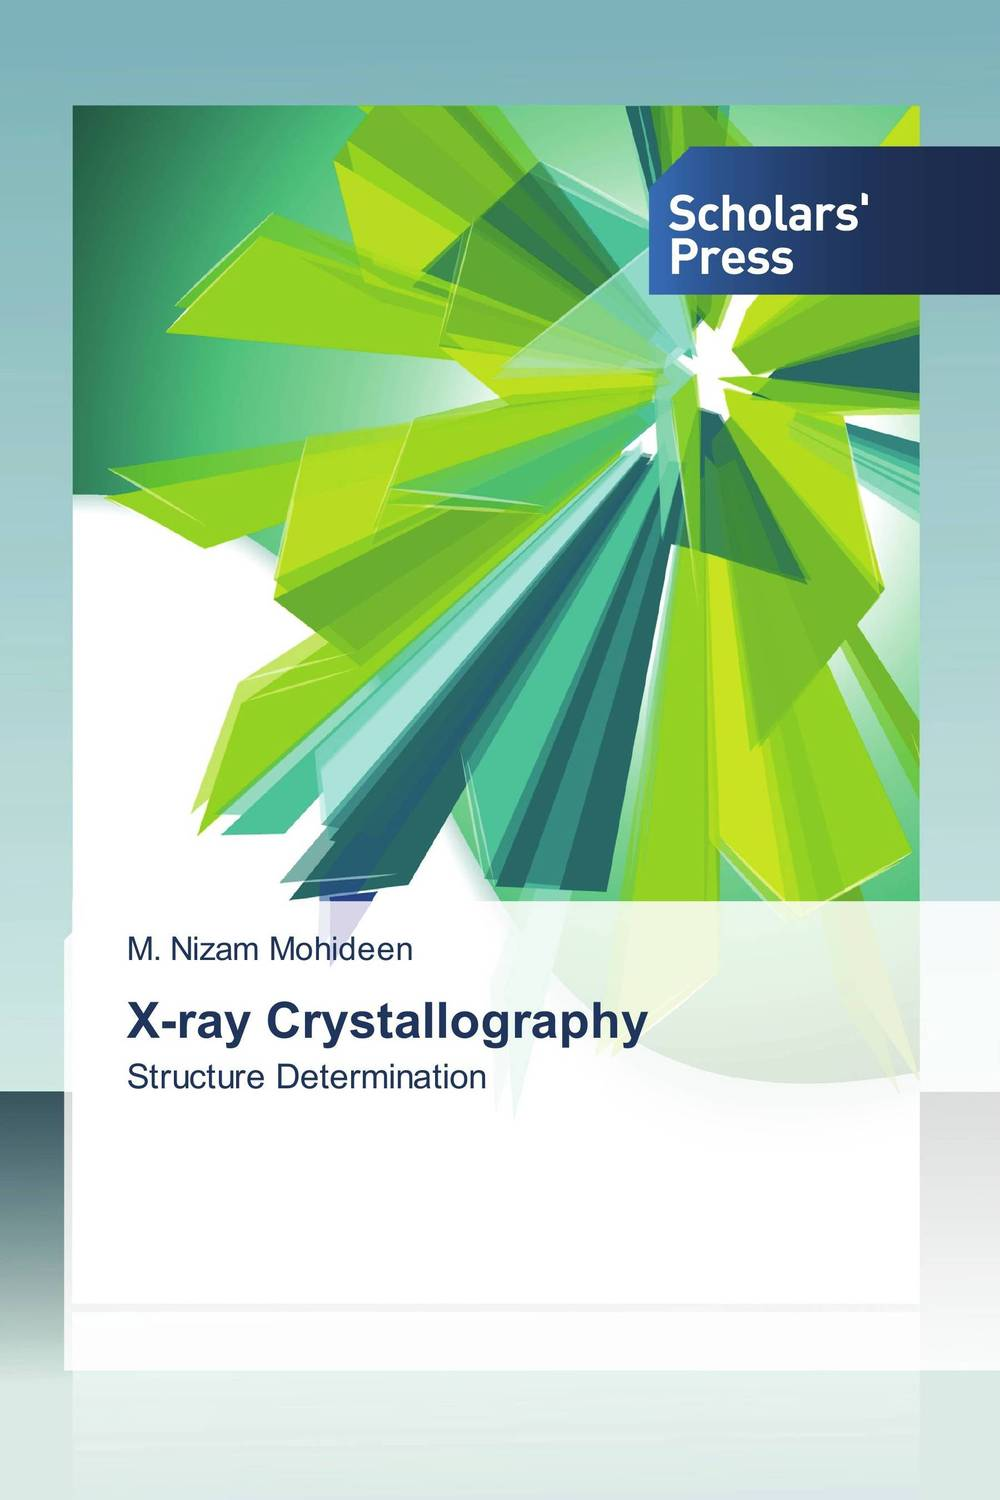 X-ray Crystallography bijoy kumar nanda and ashirbad swain analysis of machine tool structure using rsm approach